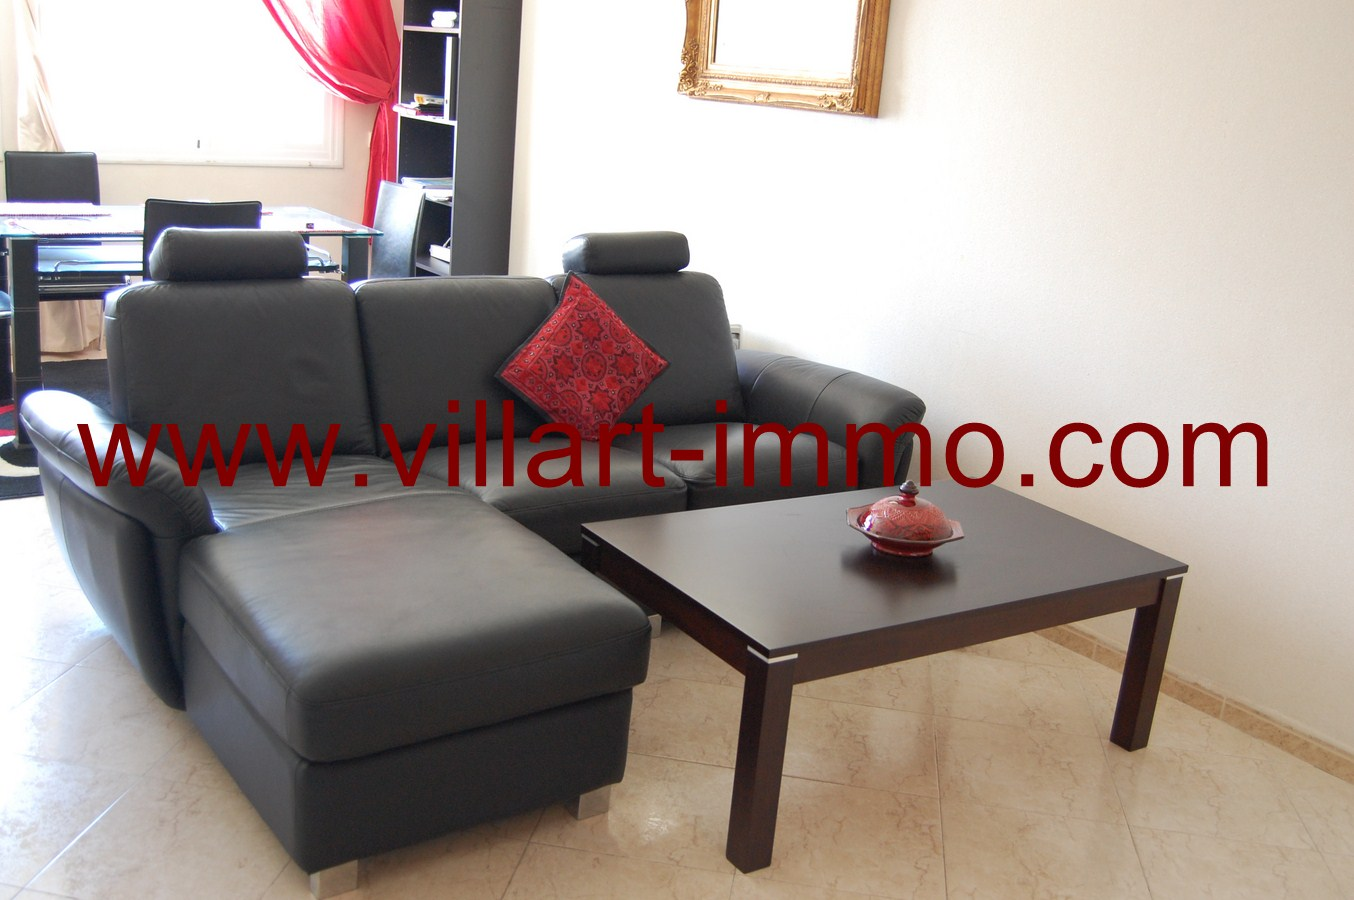 1-Location-Tanger-Appartement-Centre-ville-L449-Salon